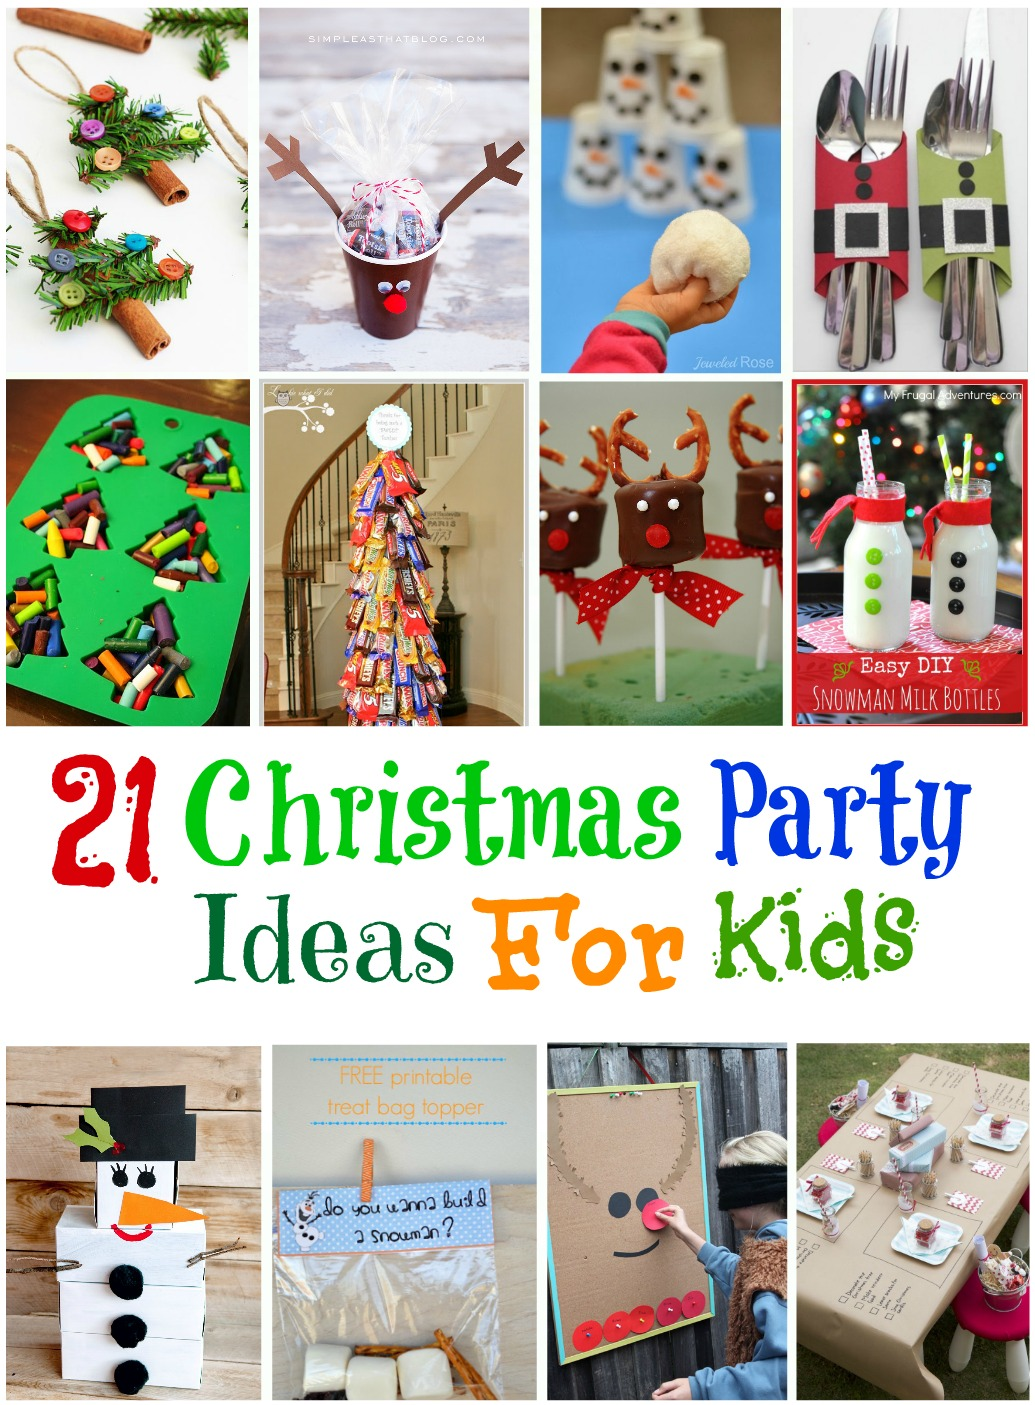 Christmas Party Ideas.21 Amazing Christmas Party Ideas For Kids